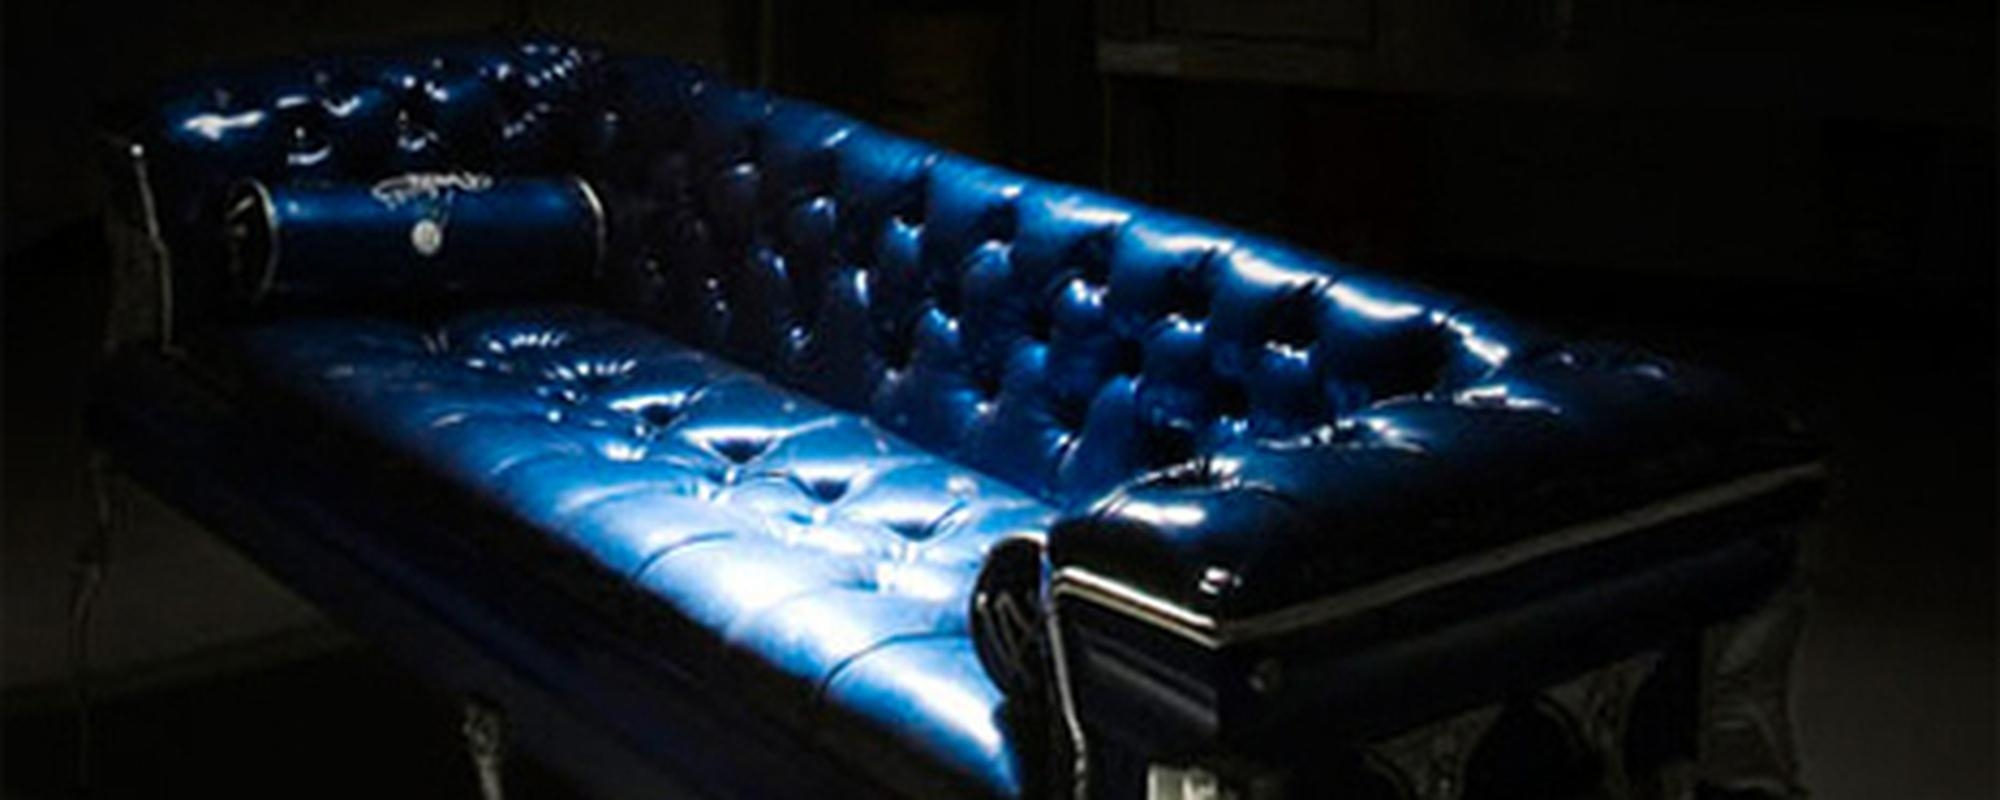 Coffin Sofa With Design Gallery 38198 | Kengire Inside Coffin Sofas (Image 5 of 20)